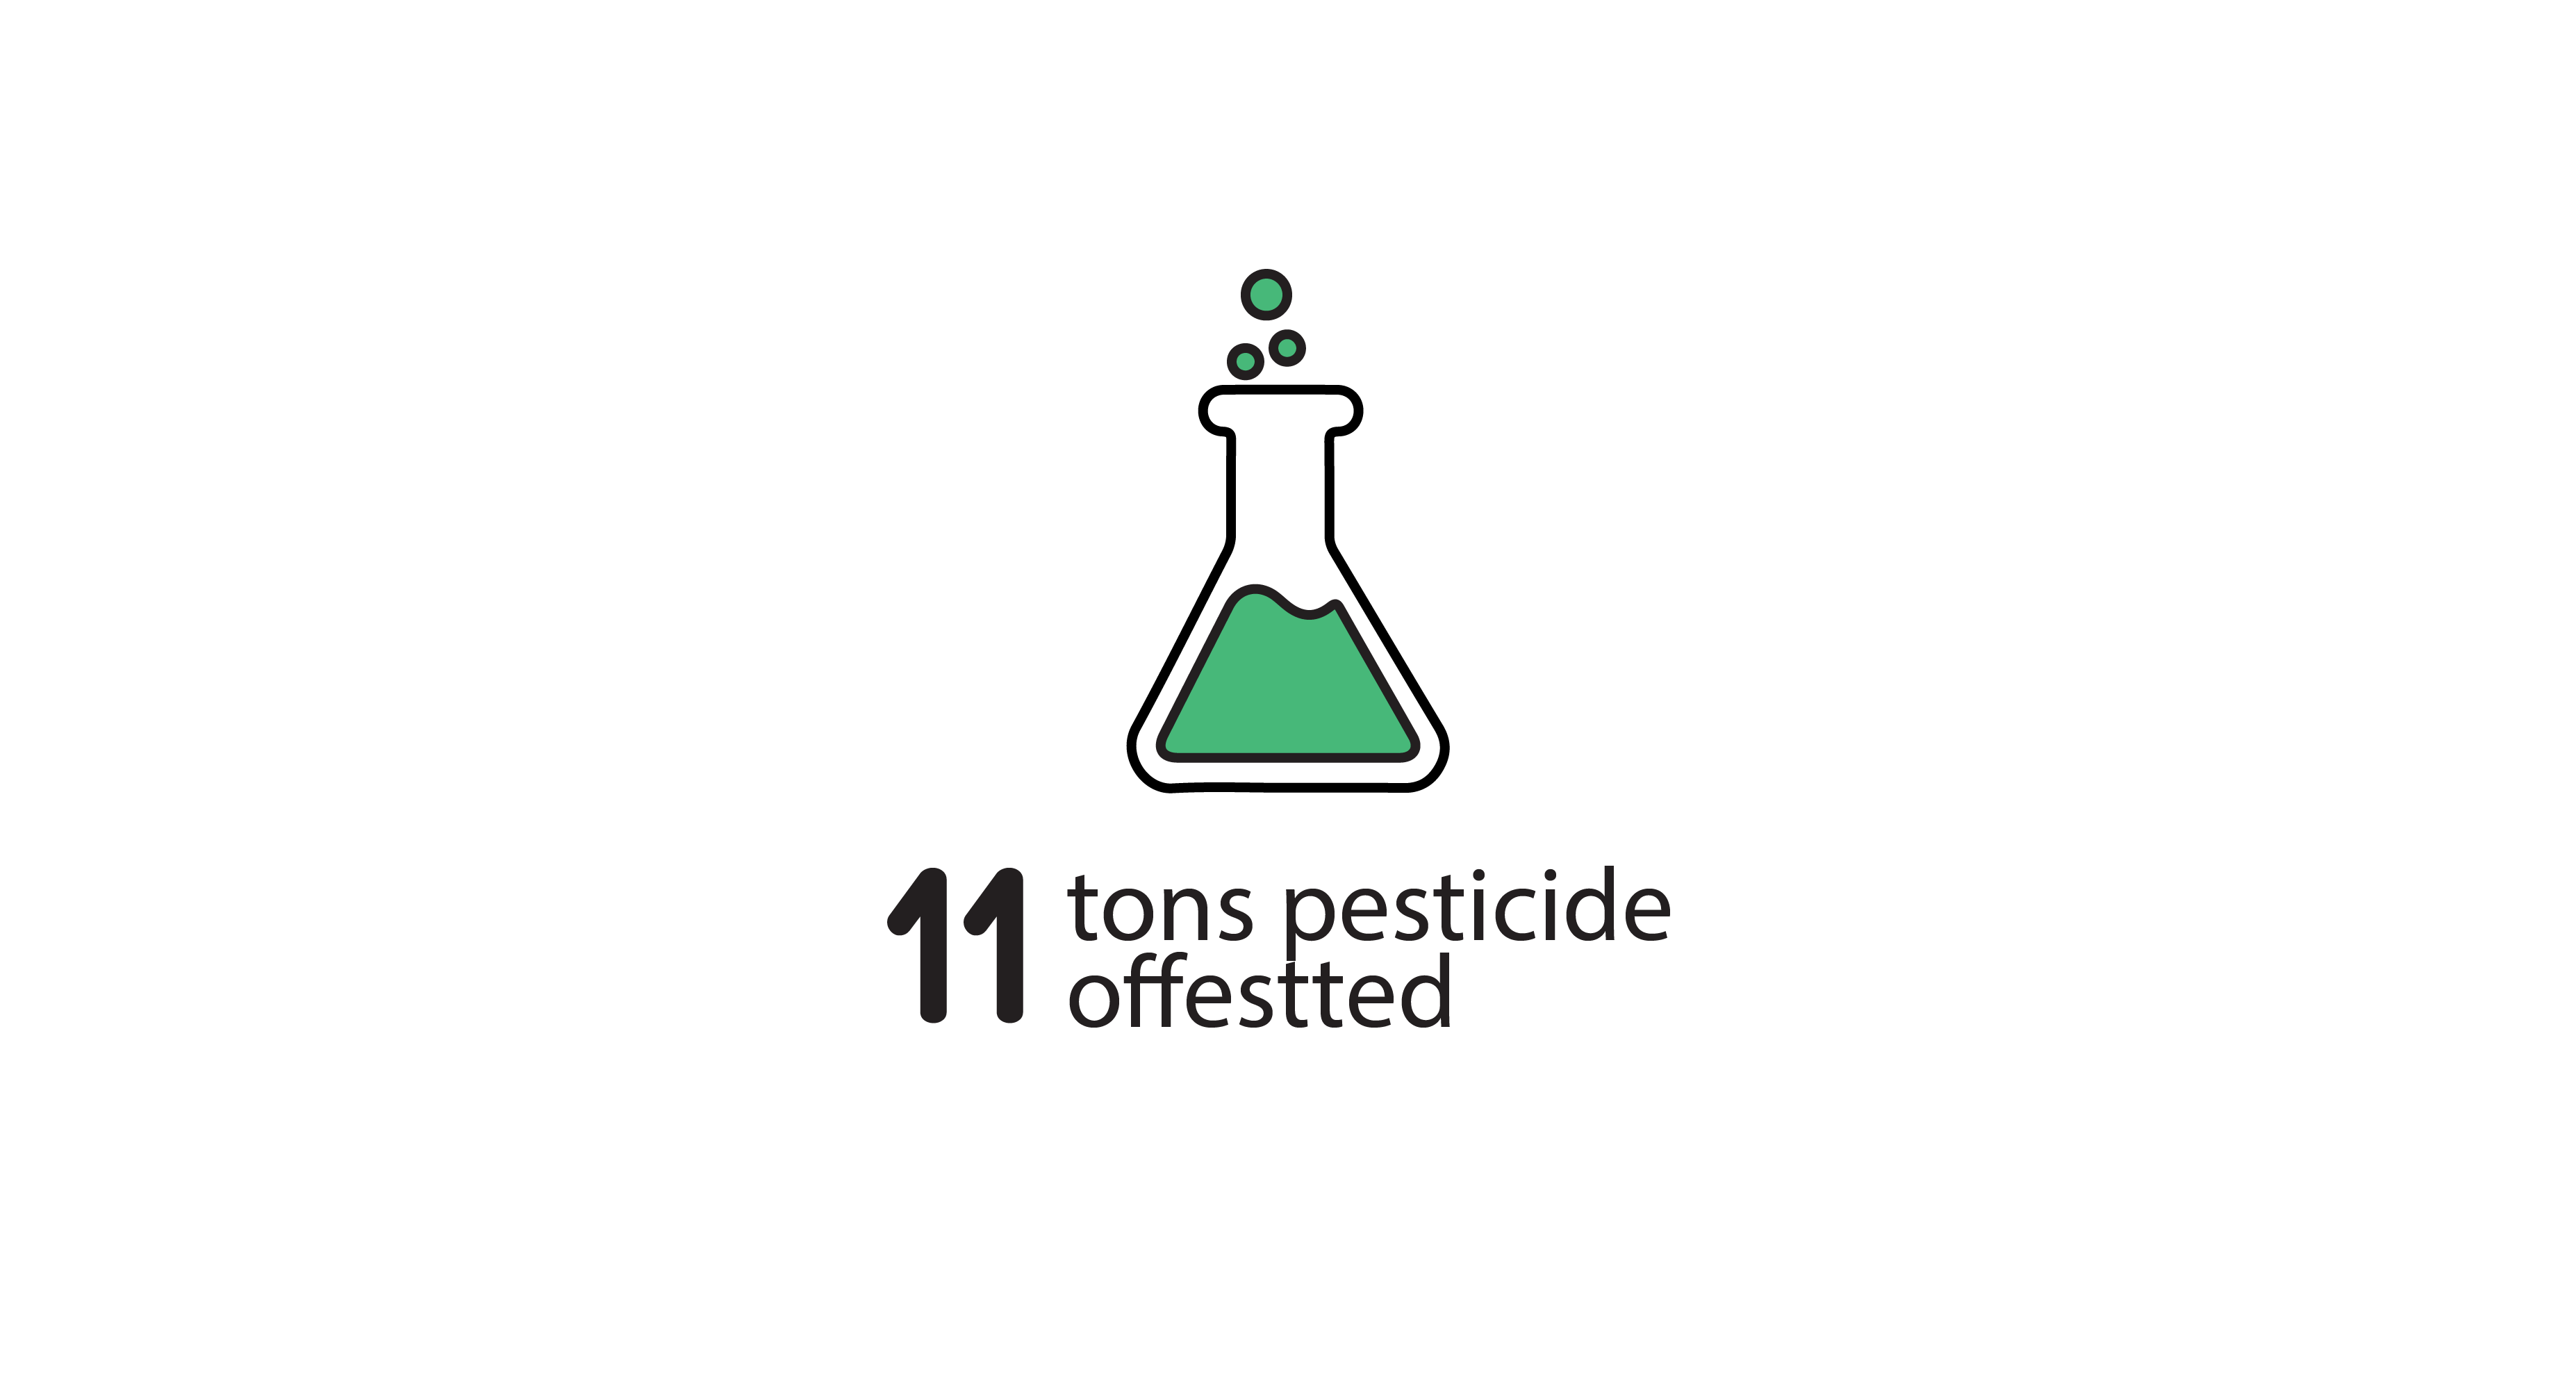 We have helped offset over 273.5 kgms of pesticide residue